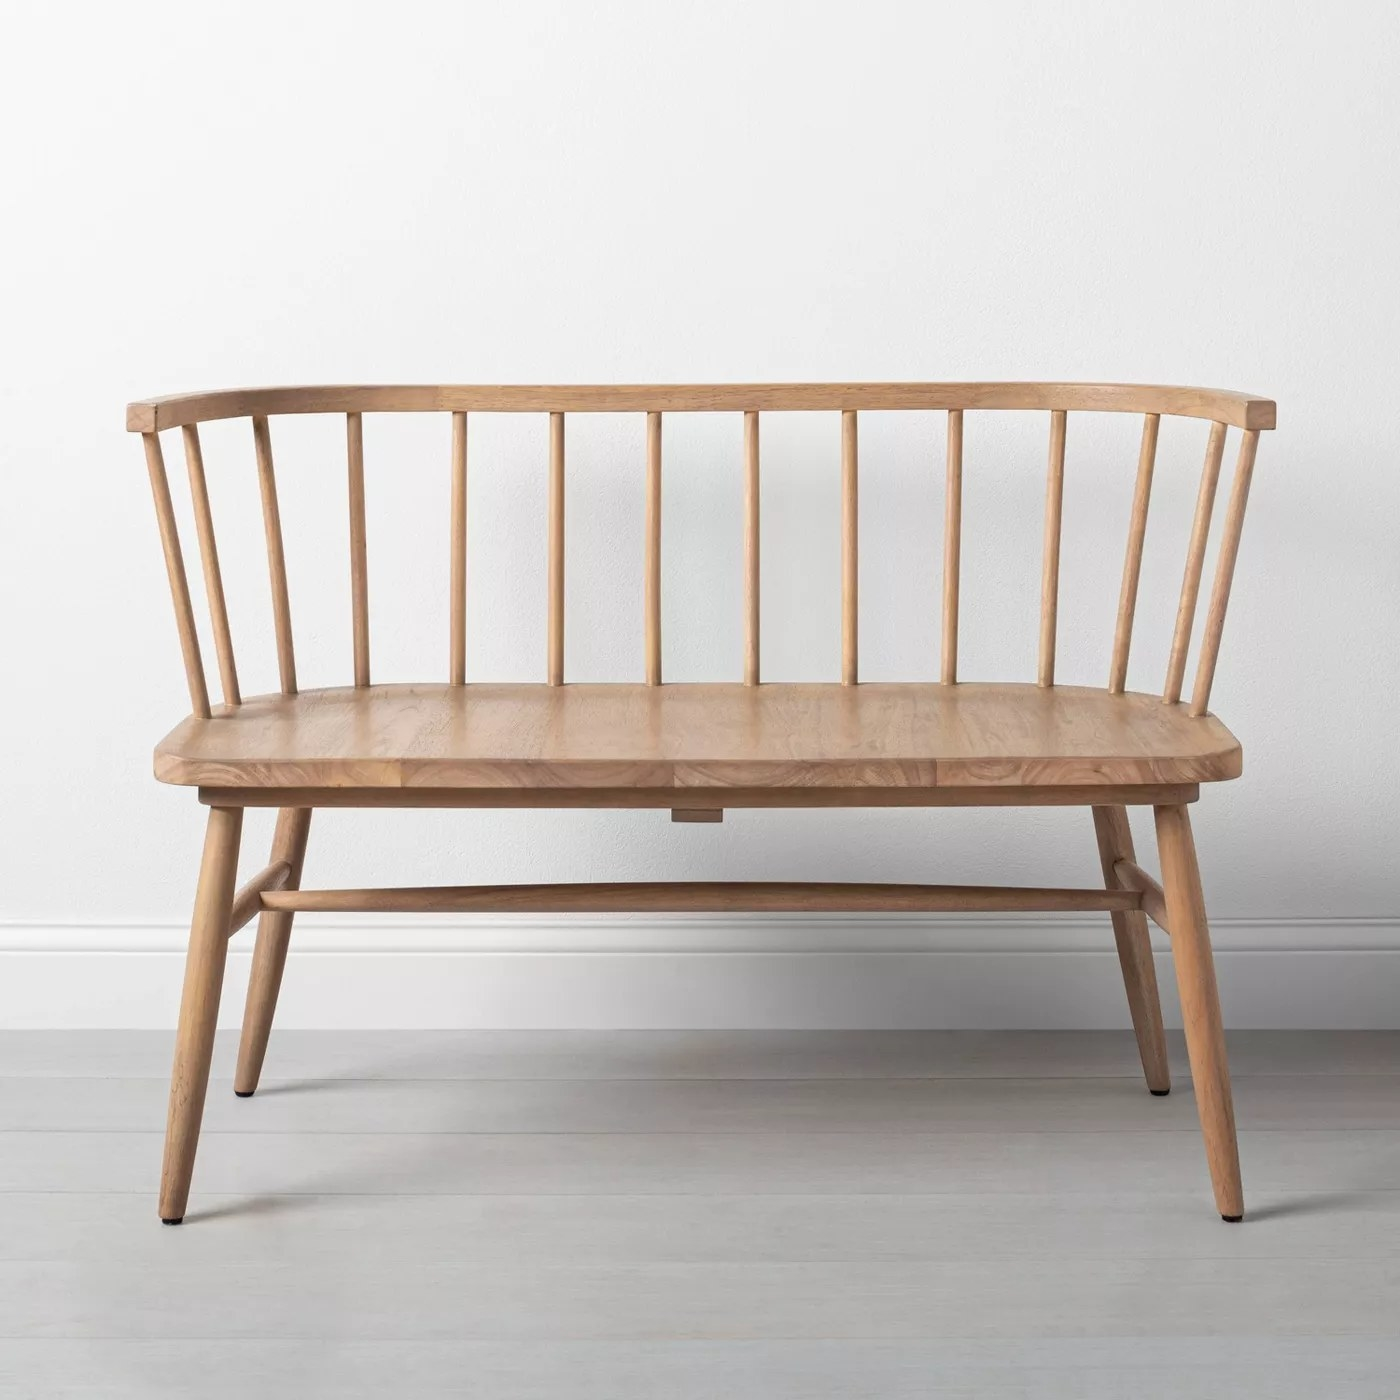 The long, curved bench with a partially see-through back